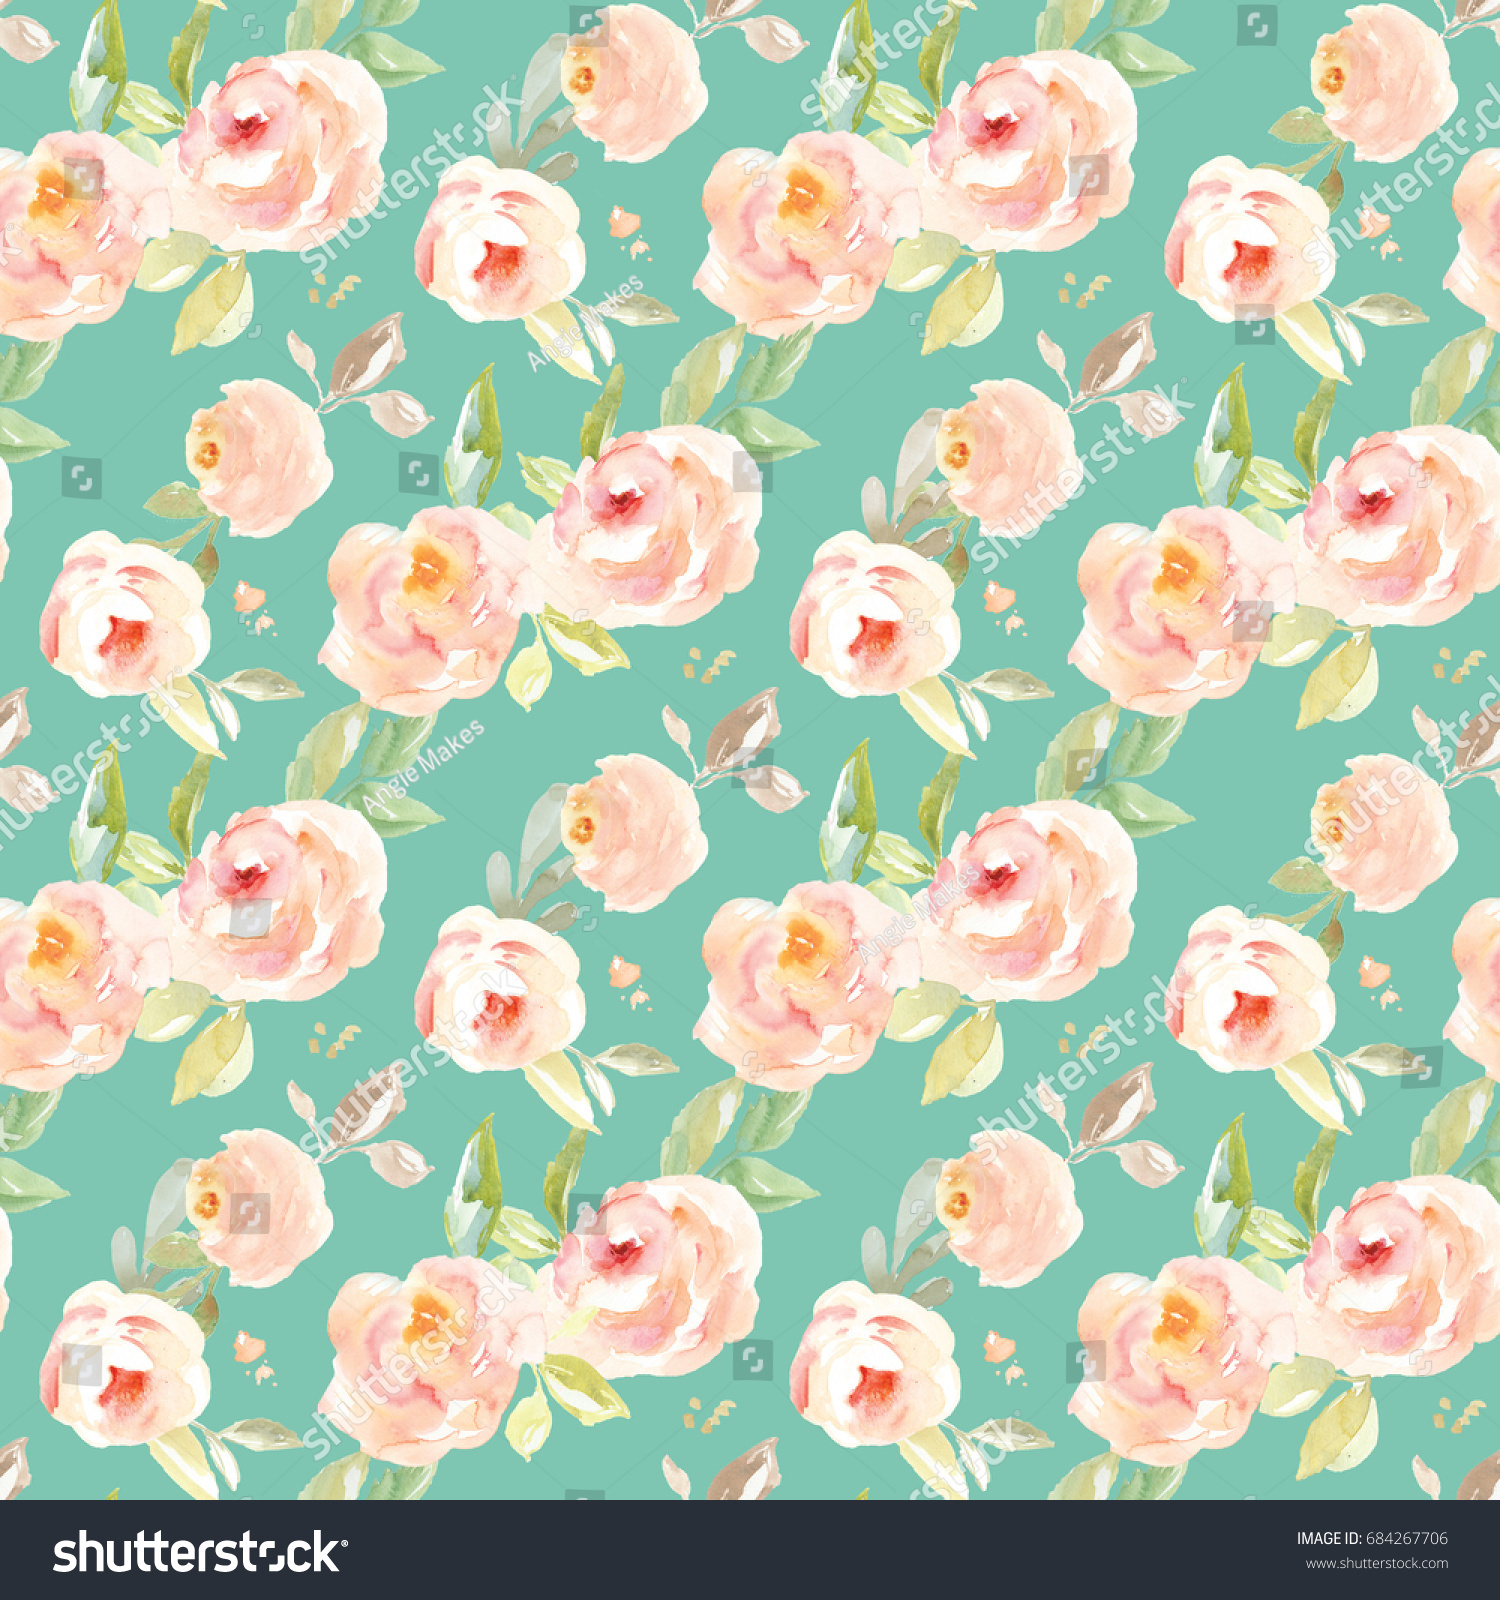 Cute Seamless Teal Floral Background Vintage Stock Illustration